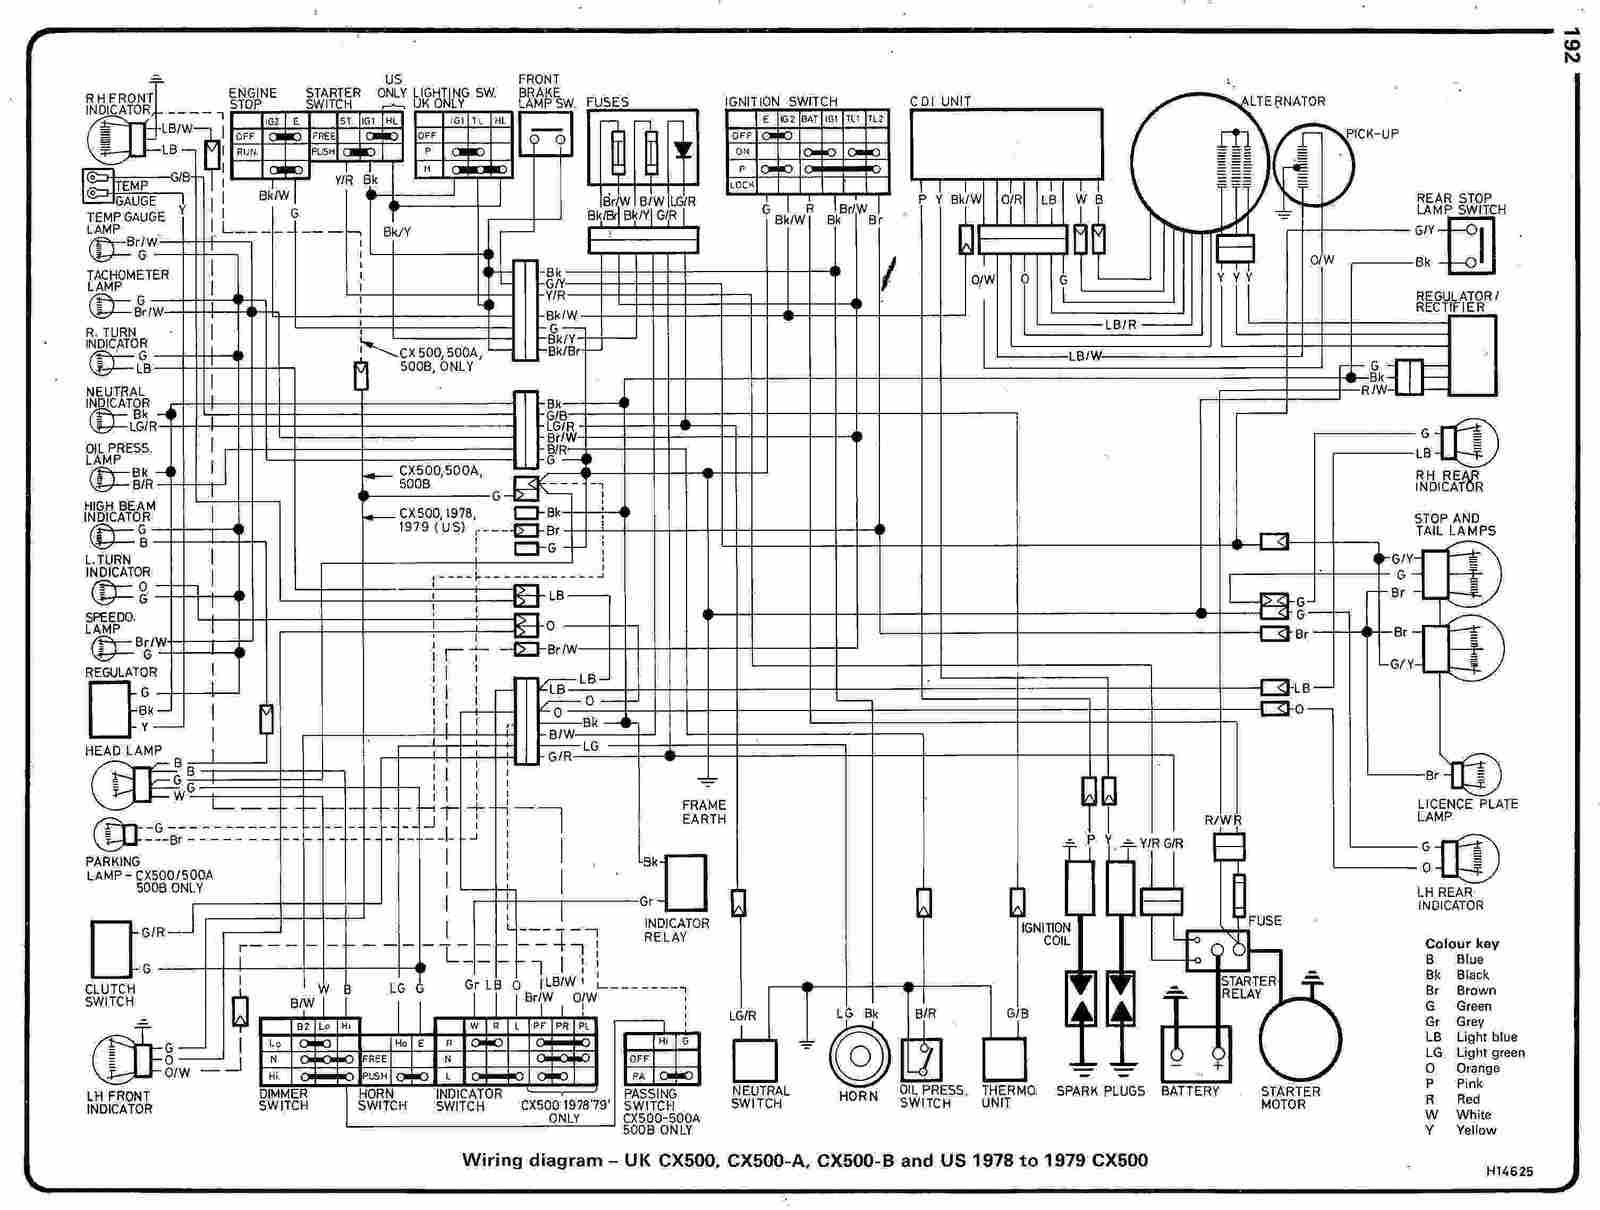 1978 dodge power wagon wiring diagram wiring diagram 1956 Dodge Power Wagon electrical diagram 1978 dodge power wagon wiring diagram1979 dodge power wagon wiring diagram wiring diagram1979 dodge